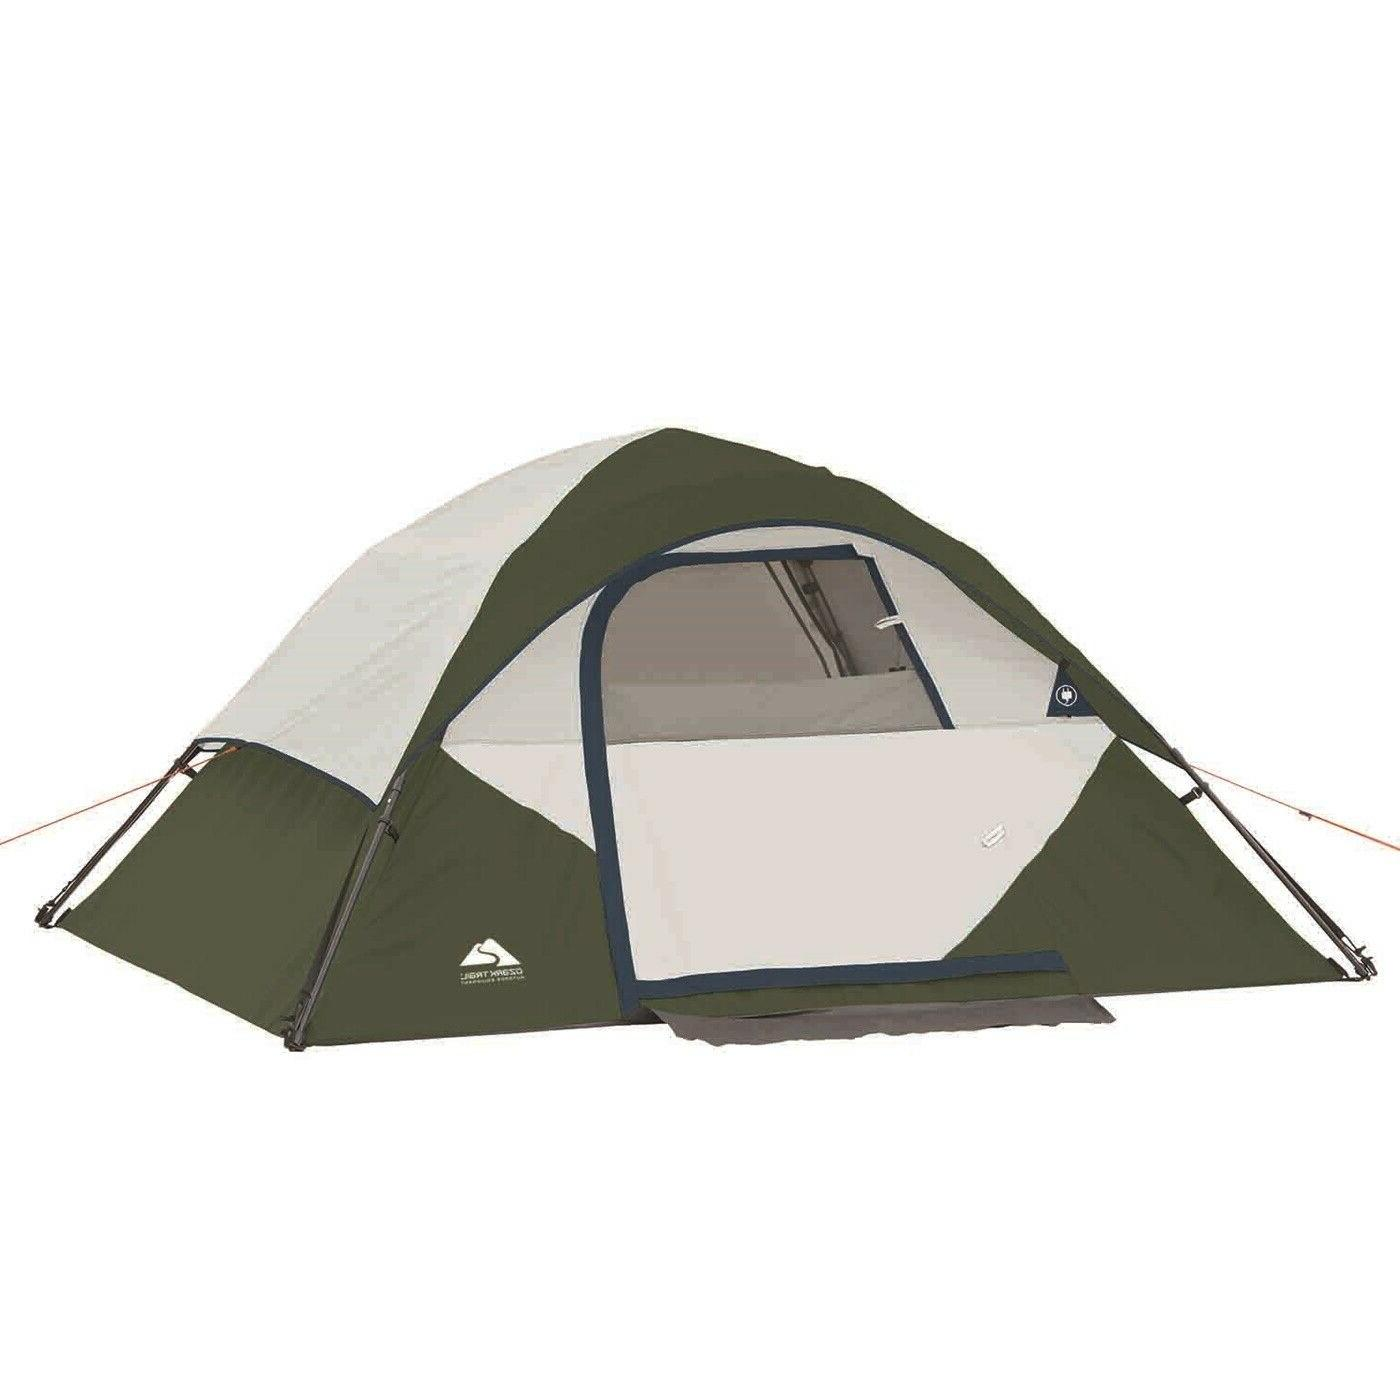 6 PIECE Ozark Combo - Tent Sleeping Bags Chairs Travel Table